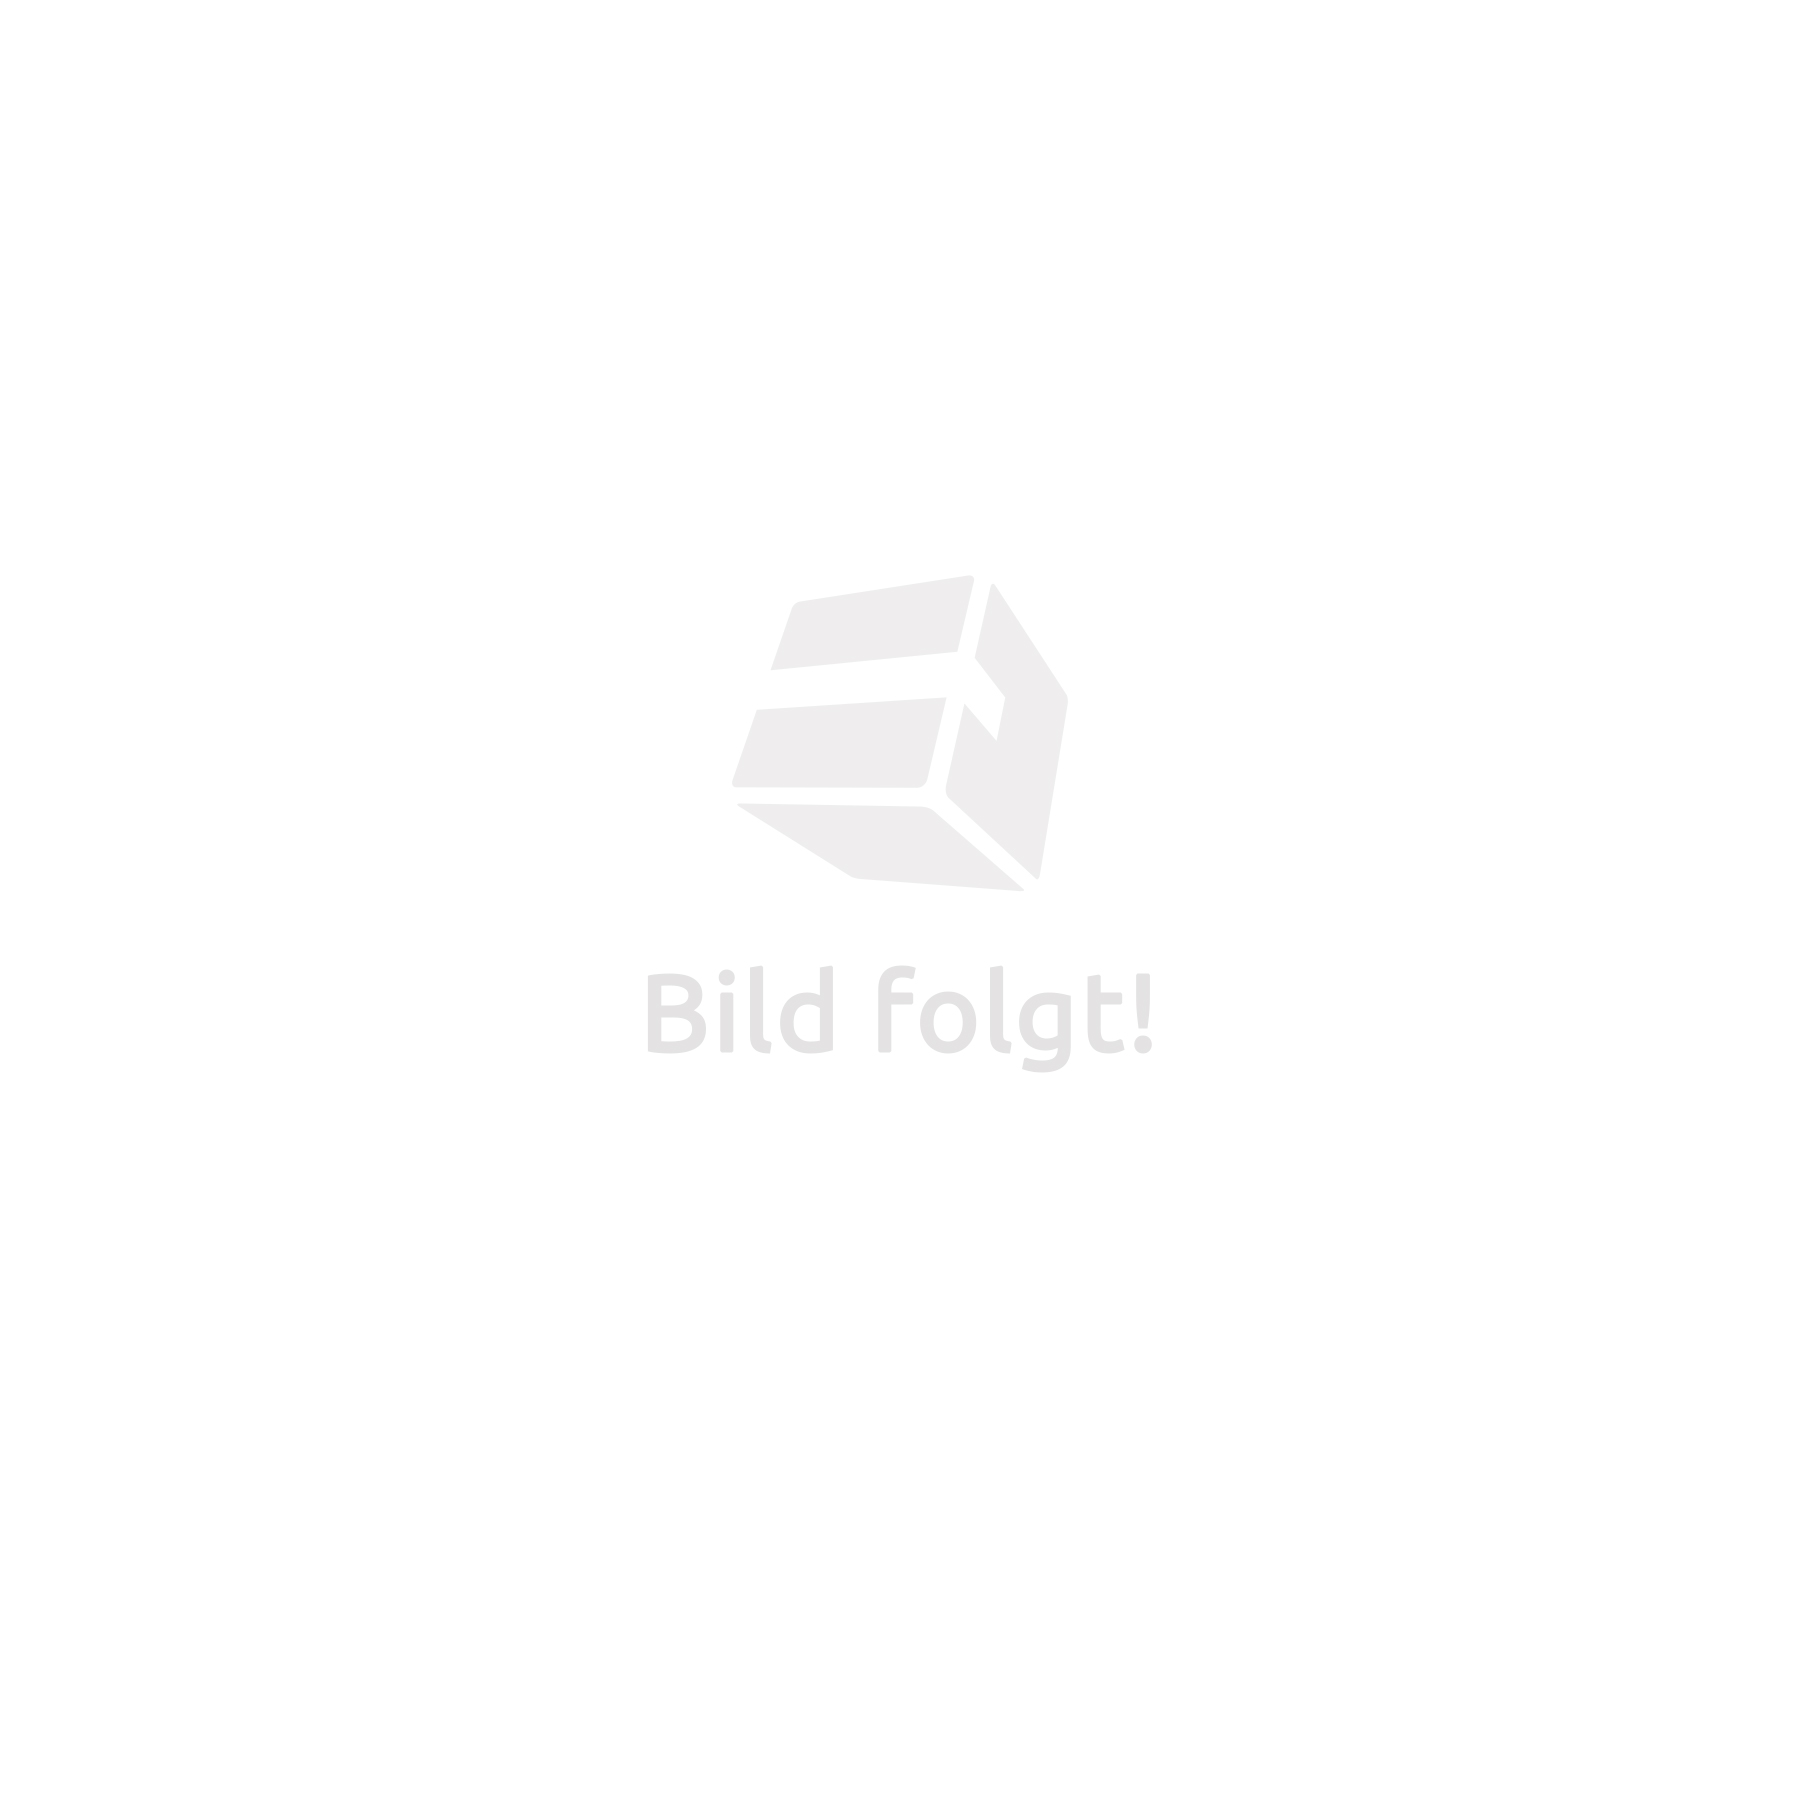 Floating shelves with 2 compartments model 1